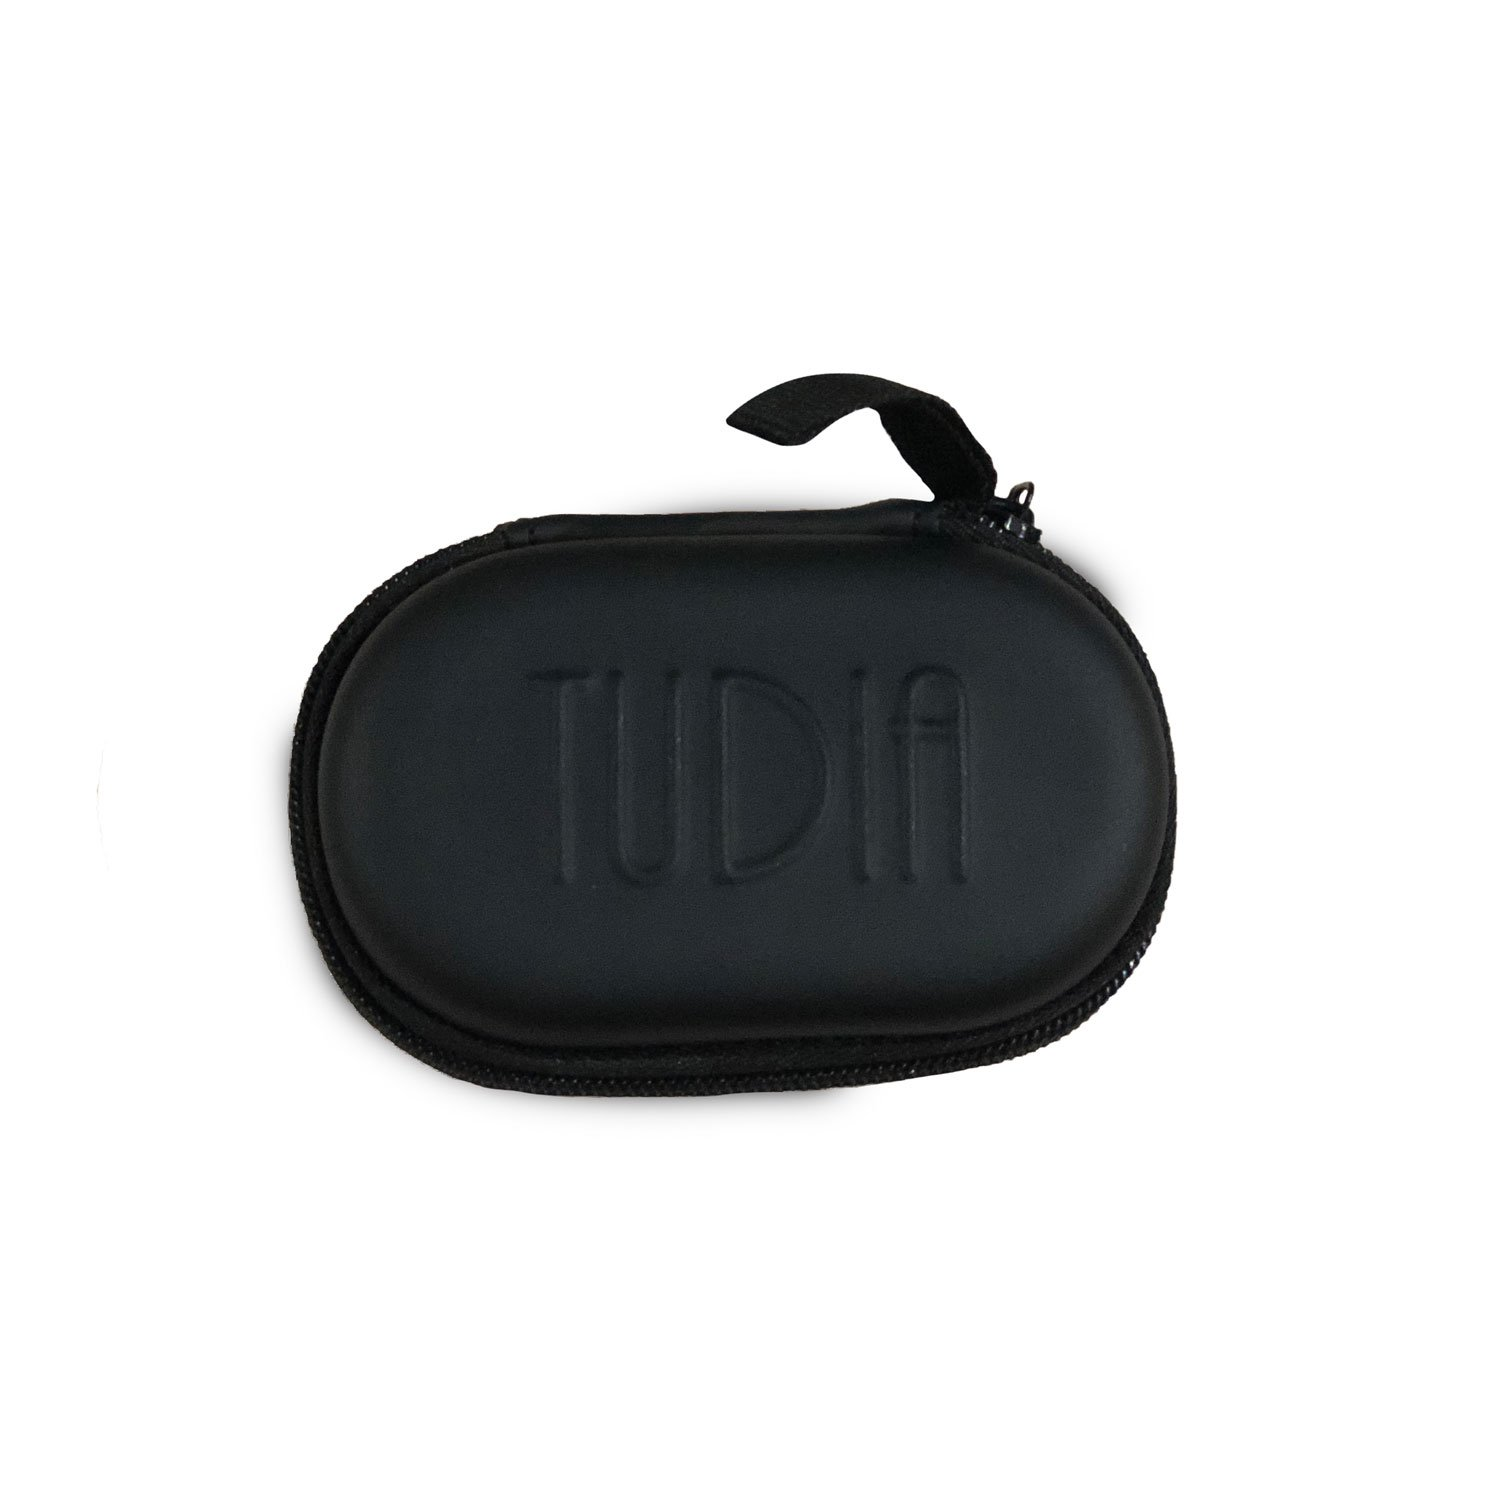 TUDIA Hard Travel EVA Carrying Storage Case for Essential Products/Essential Phone PH-1 360 Degree Camera Lens by TUDIA (Image #3)